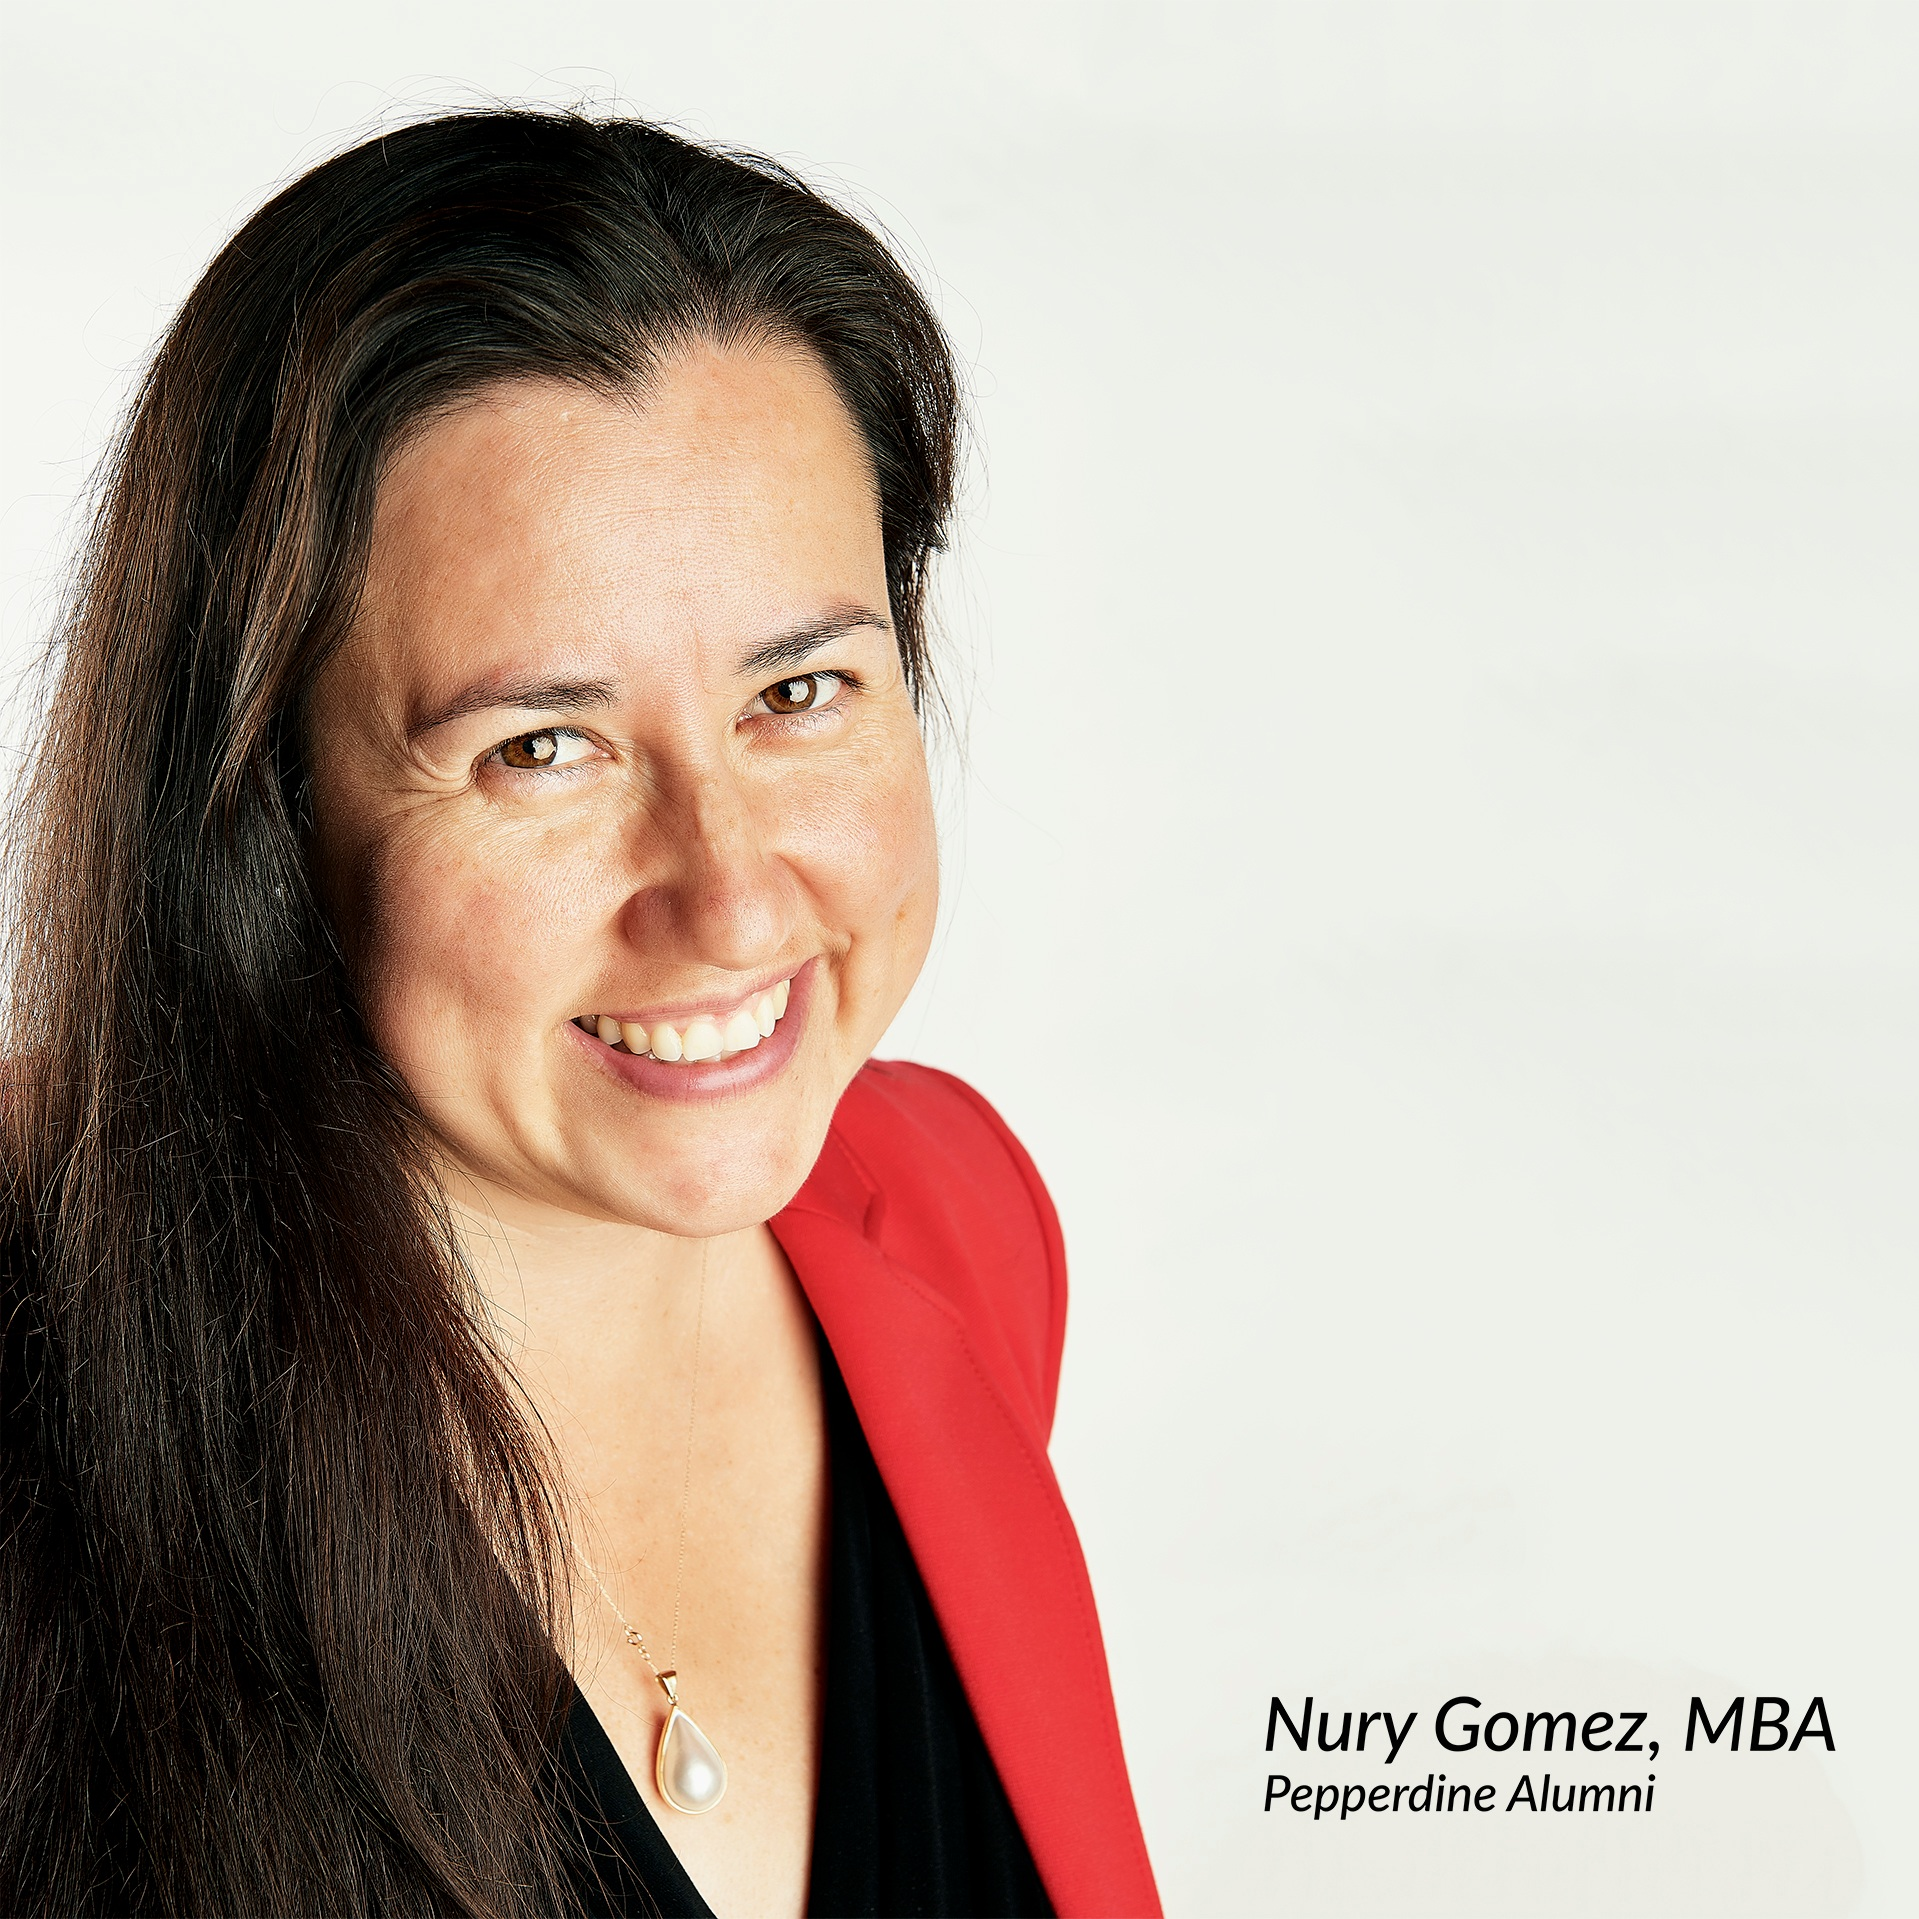 Nury_Gomez_South_Bay.jpg